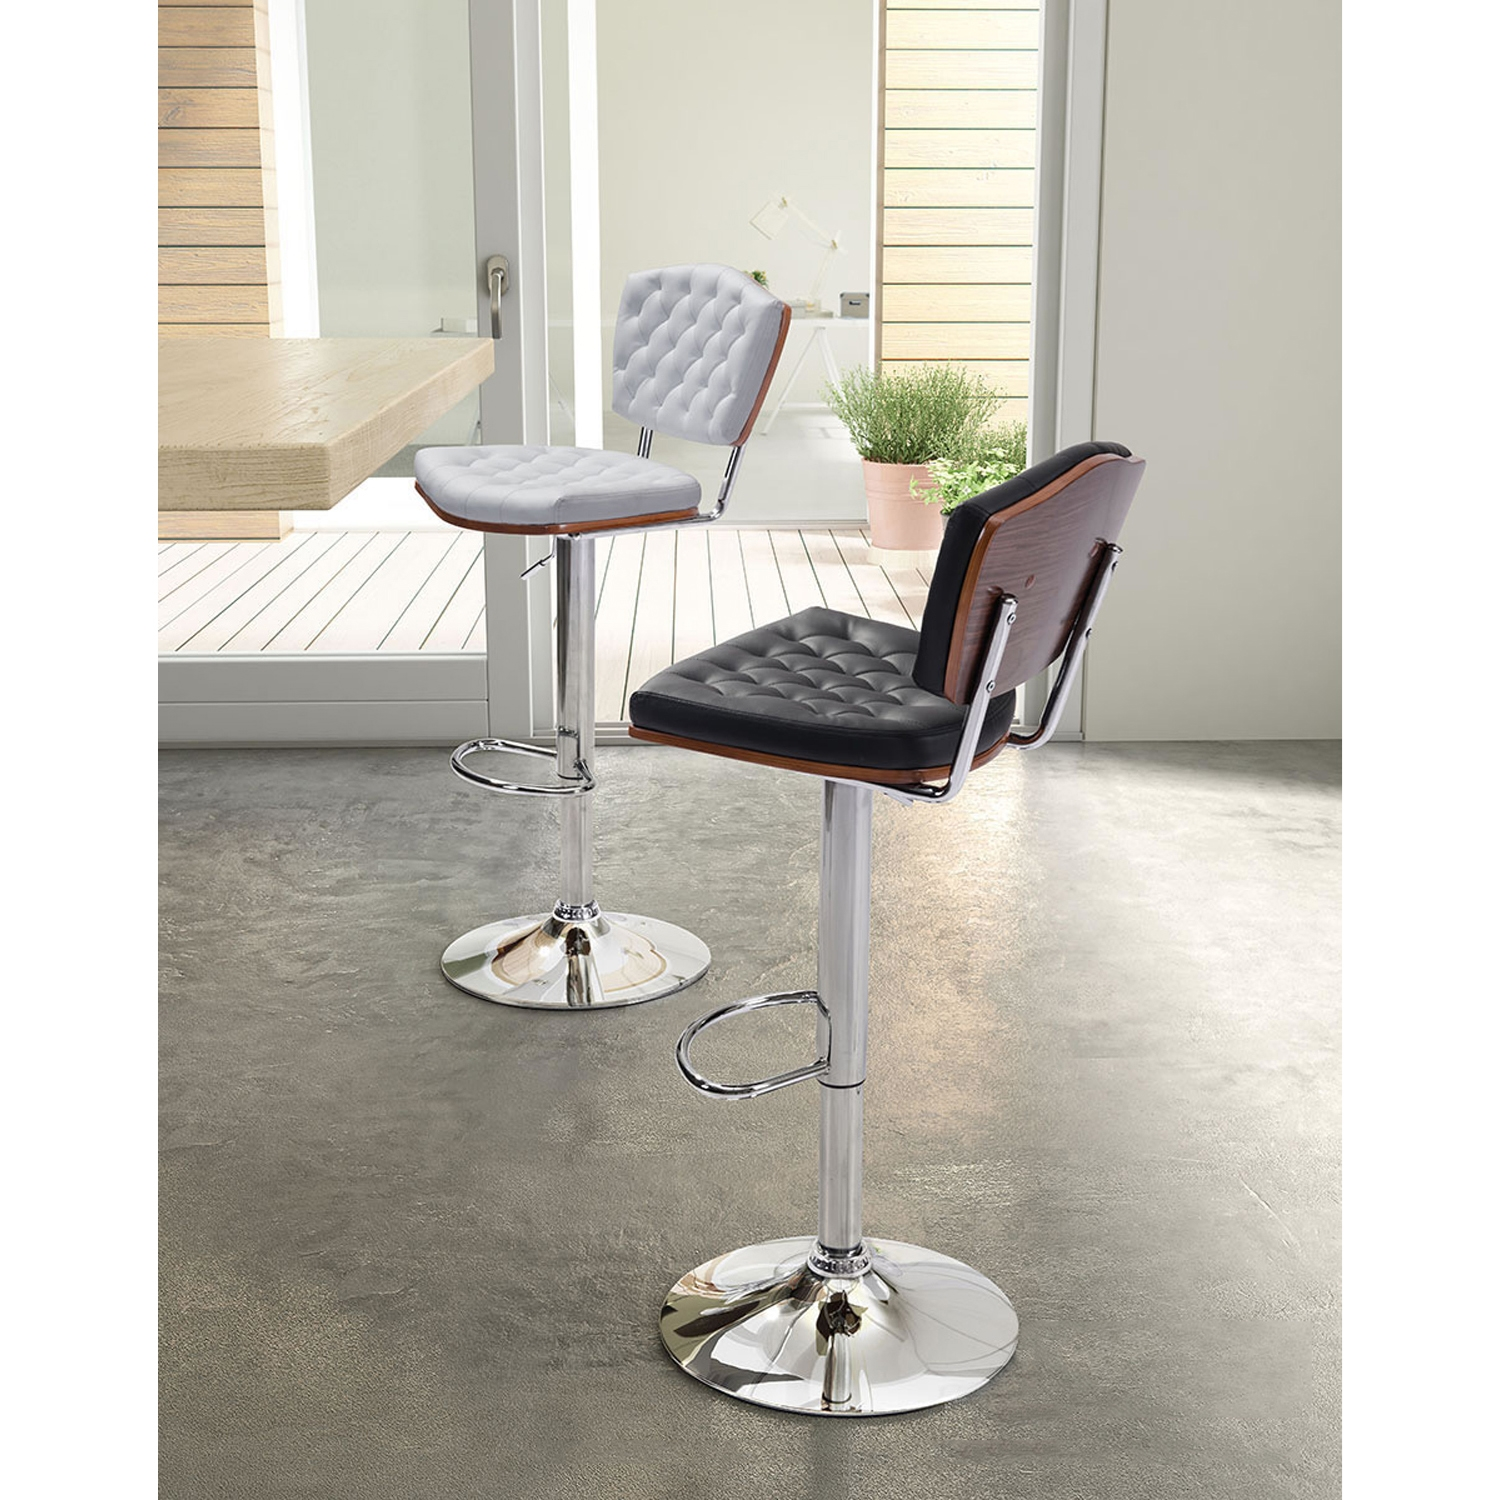 Tiger Bar Chair - Tufted, White - ZM-100316